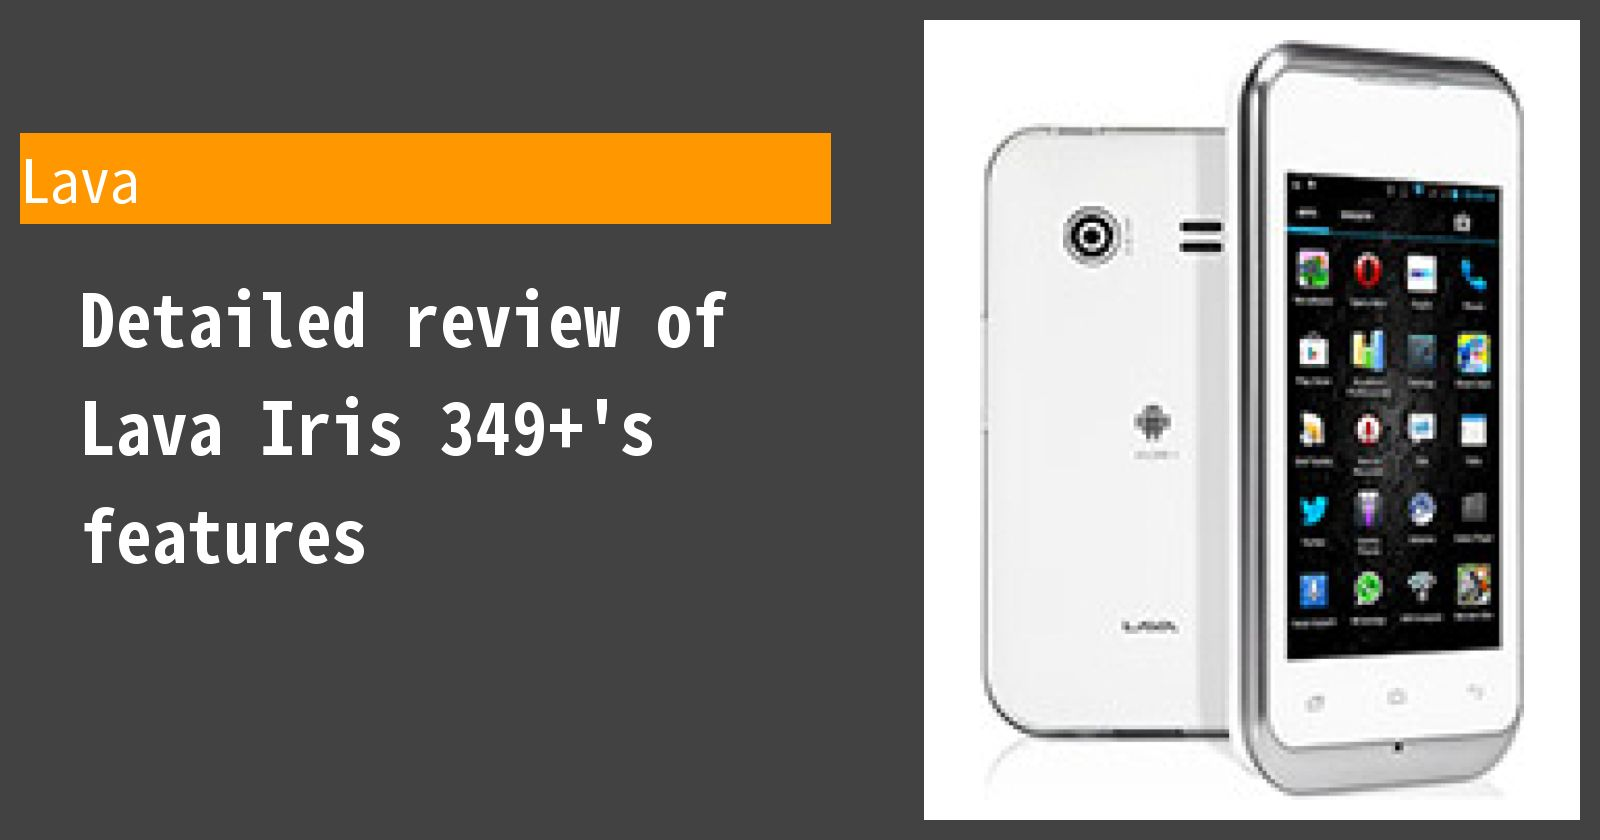 Detailed review of Lava Iris 349+'s features